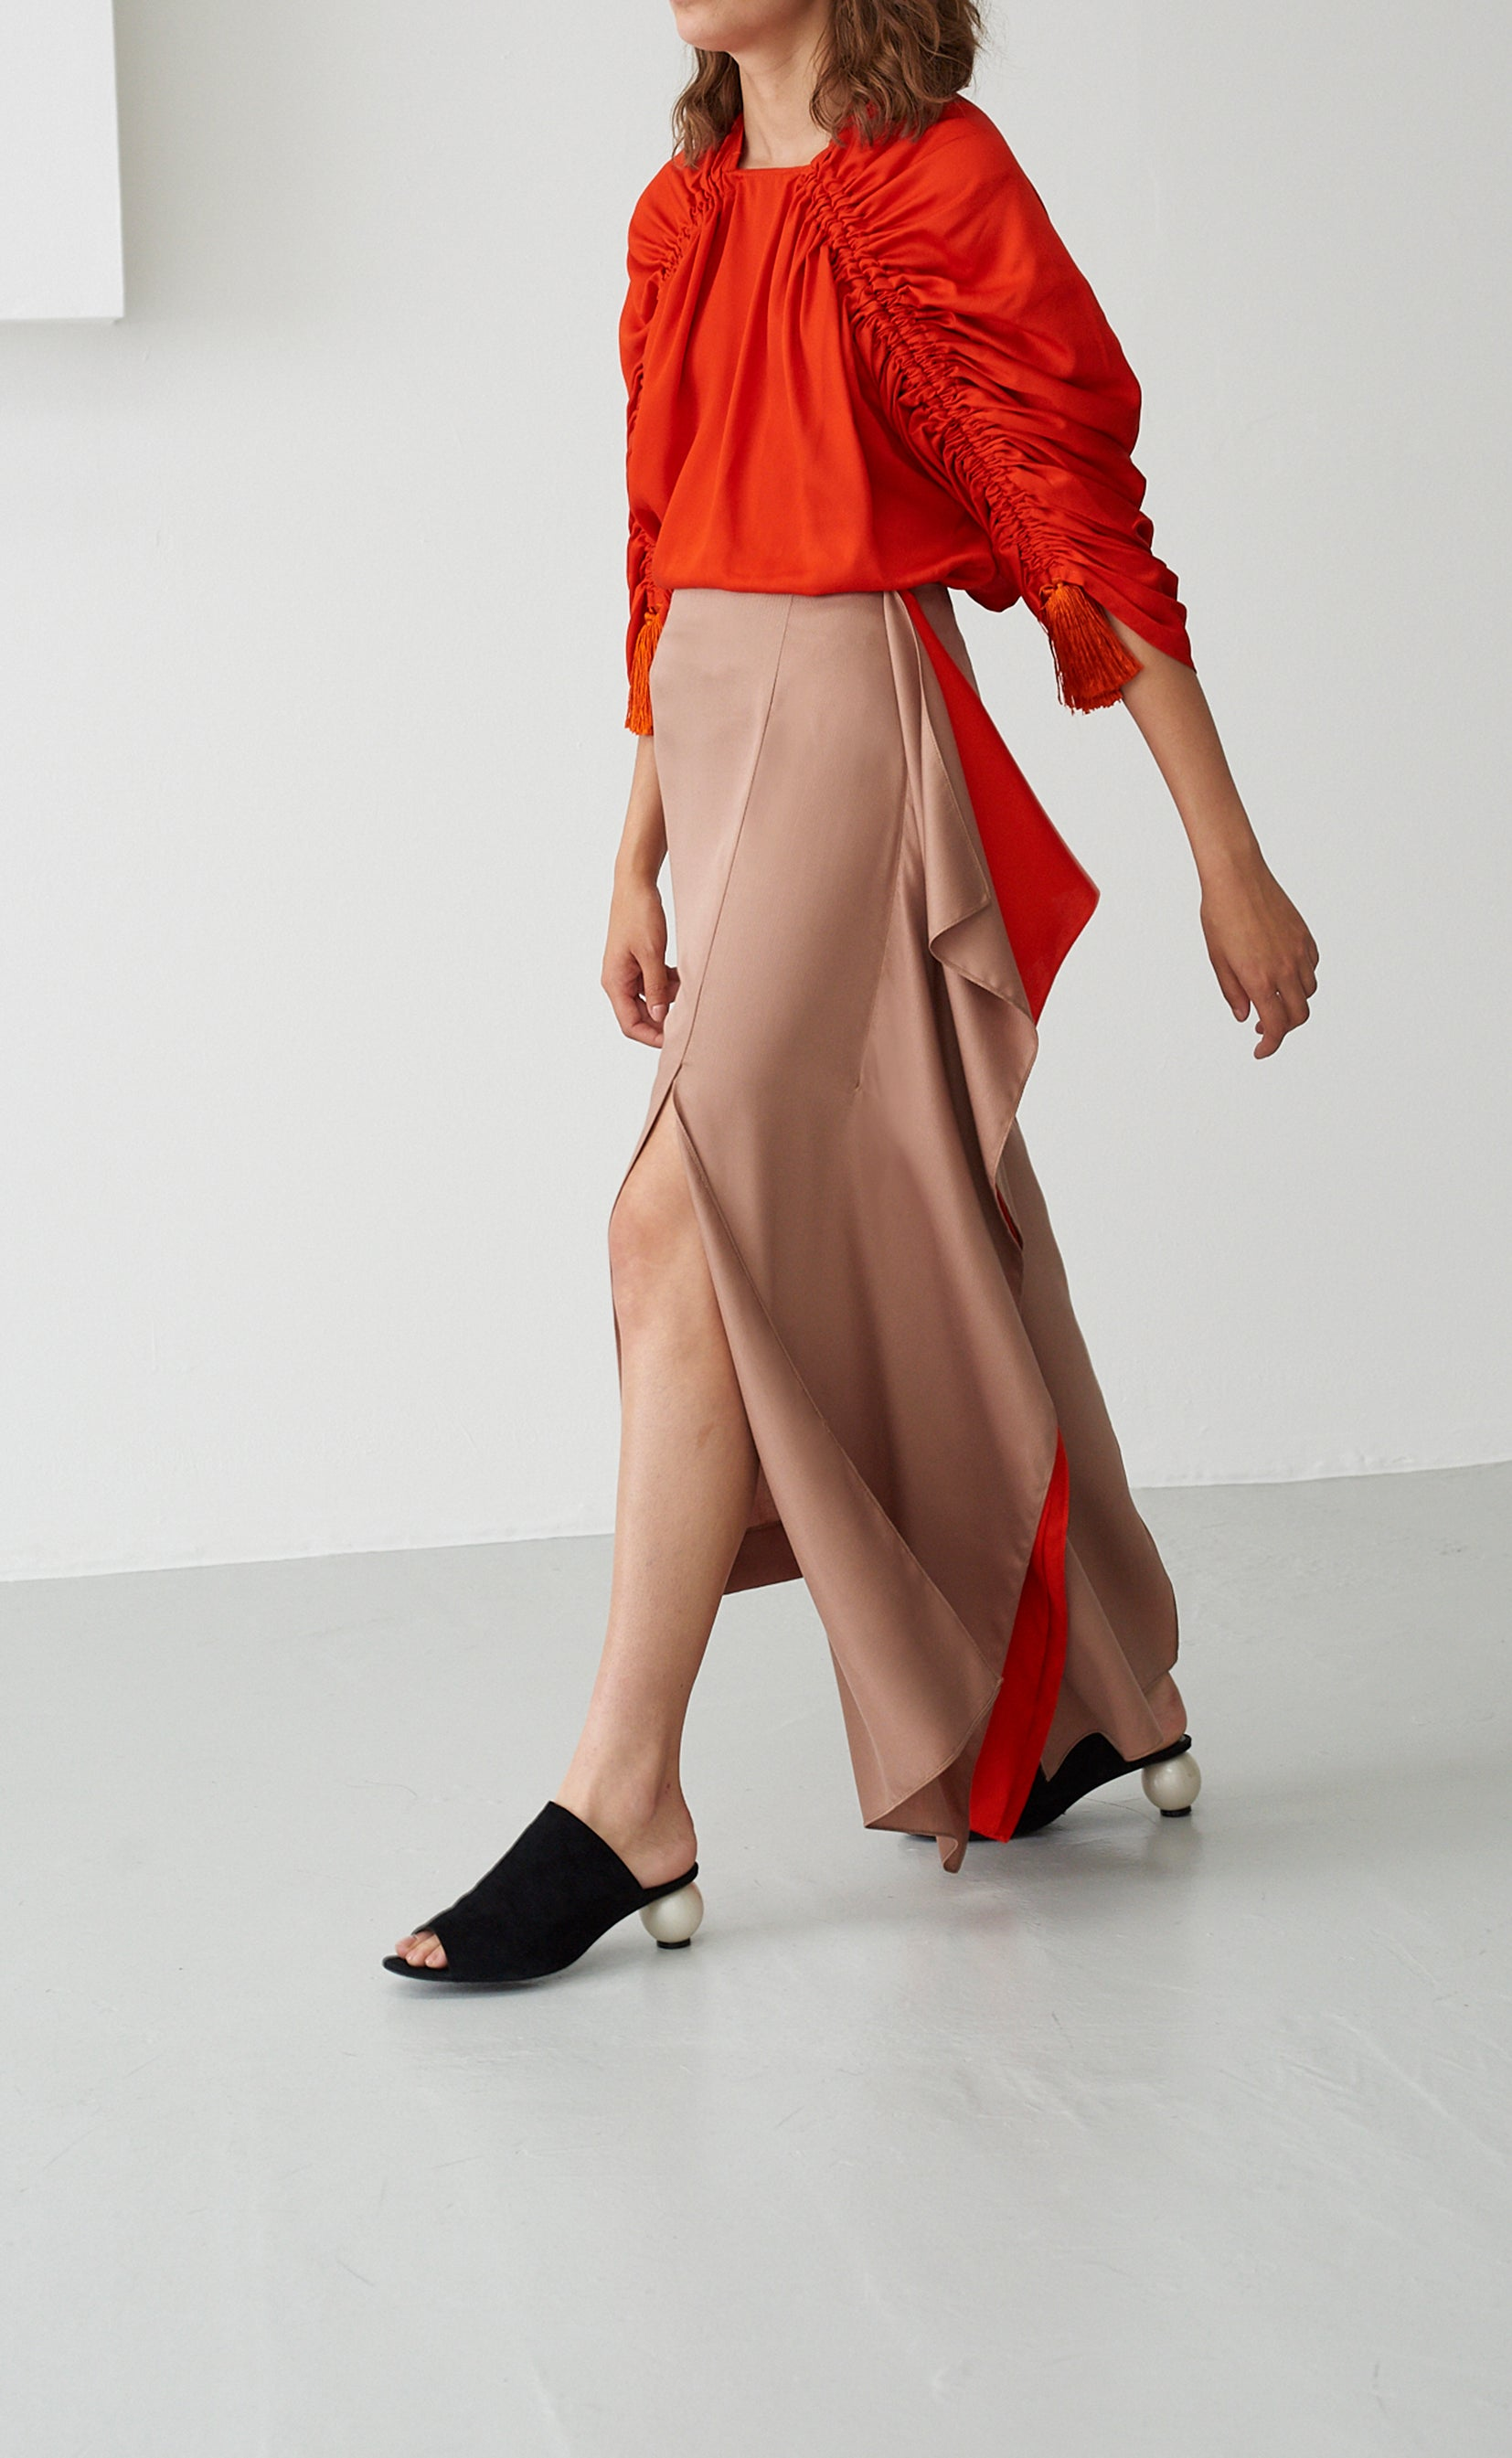 JUDITH TAN & CORAL SKIRT